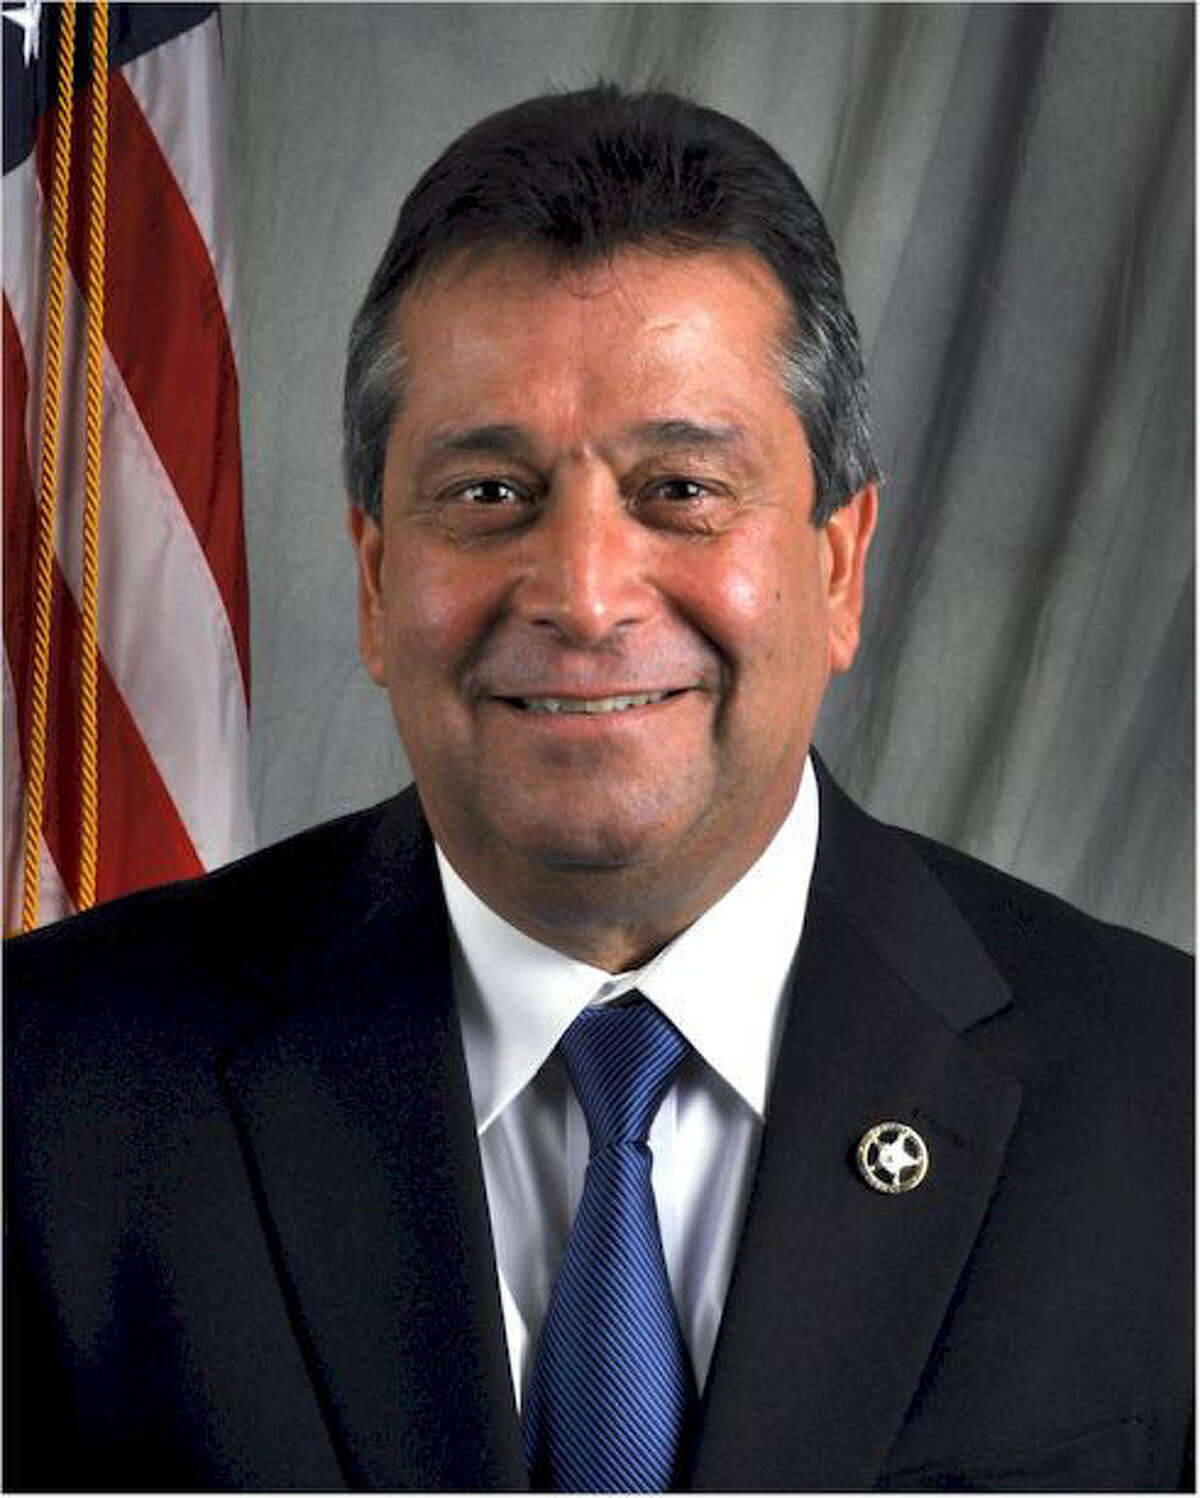 Robert Almonte is United States marshal for the Western District of Texas.